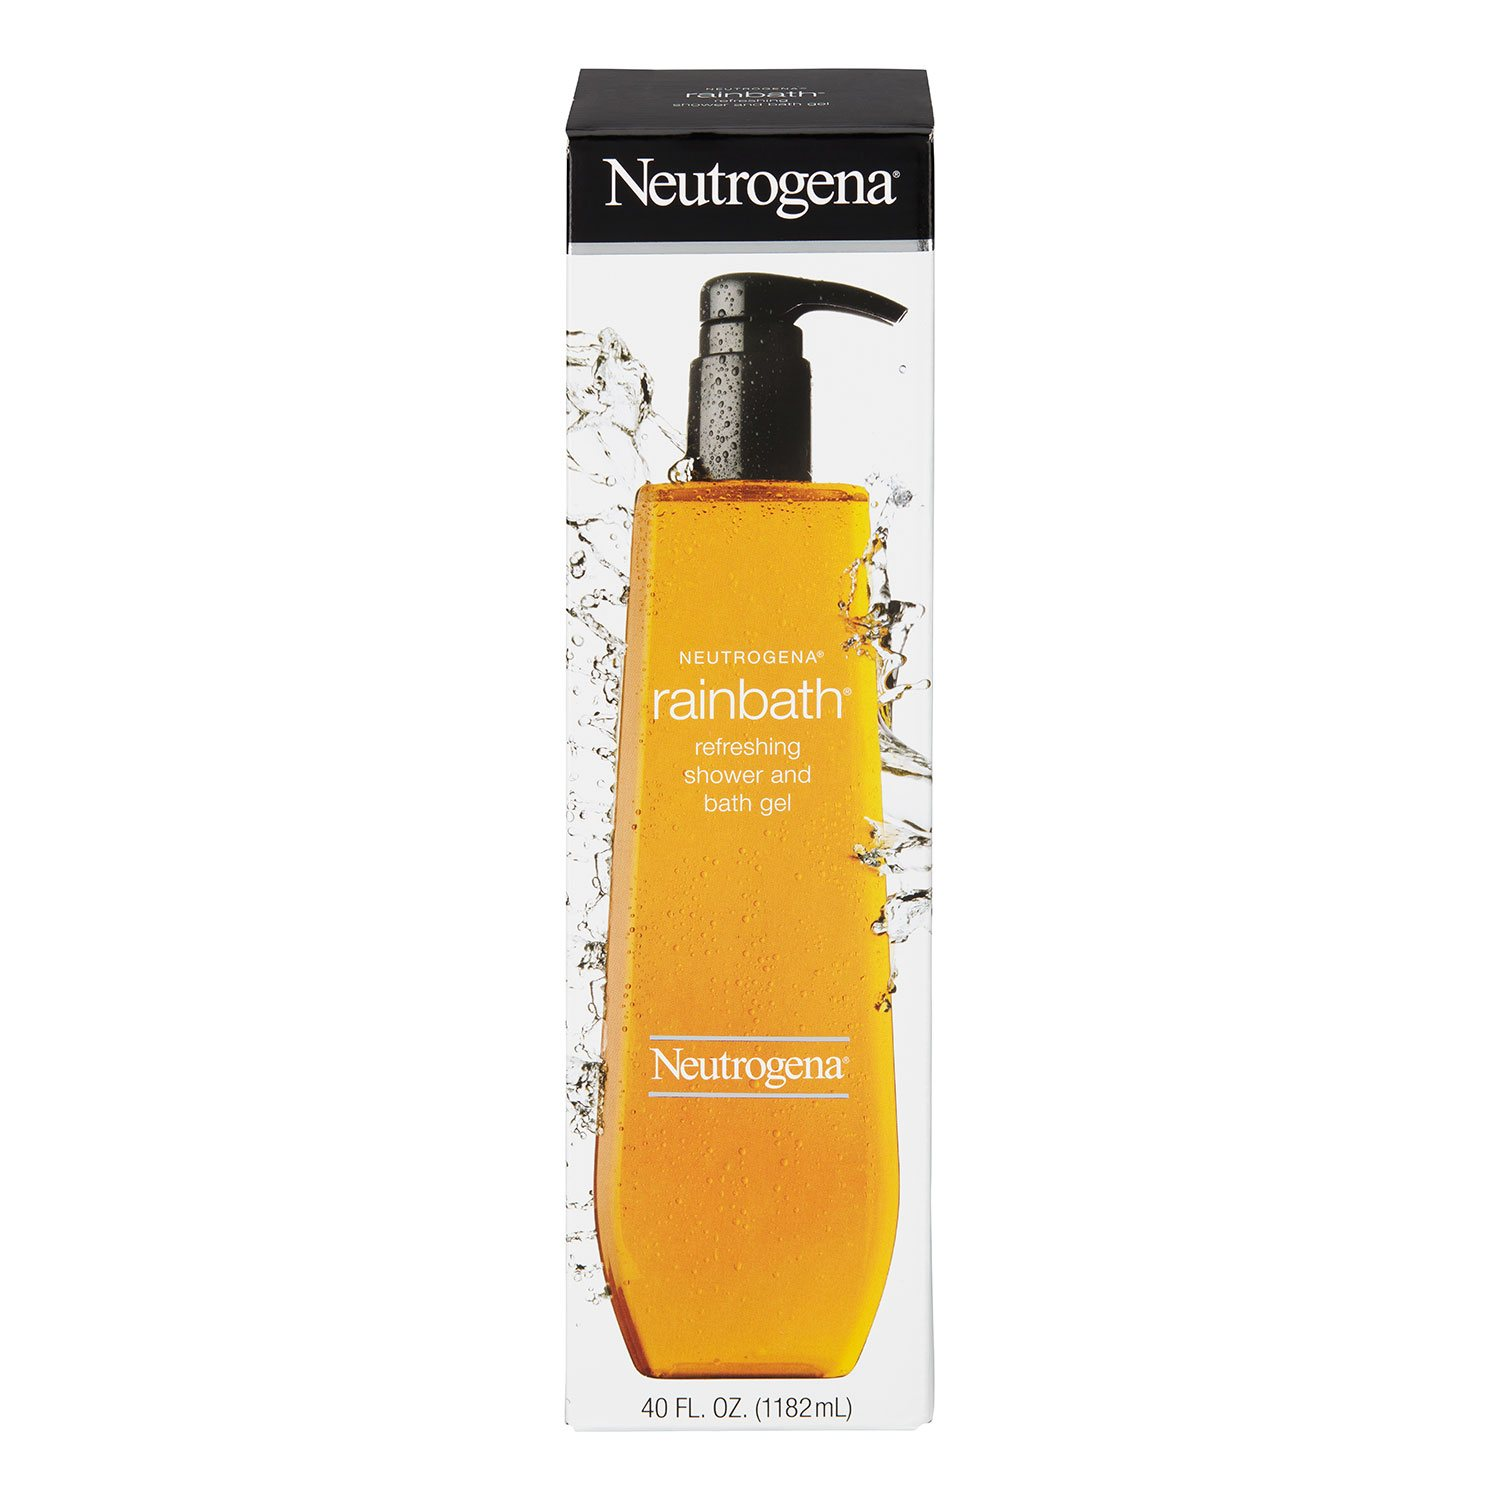 neutrogena rainbath shower and bath gel 40oz ebay